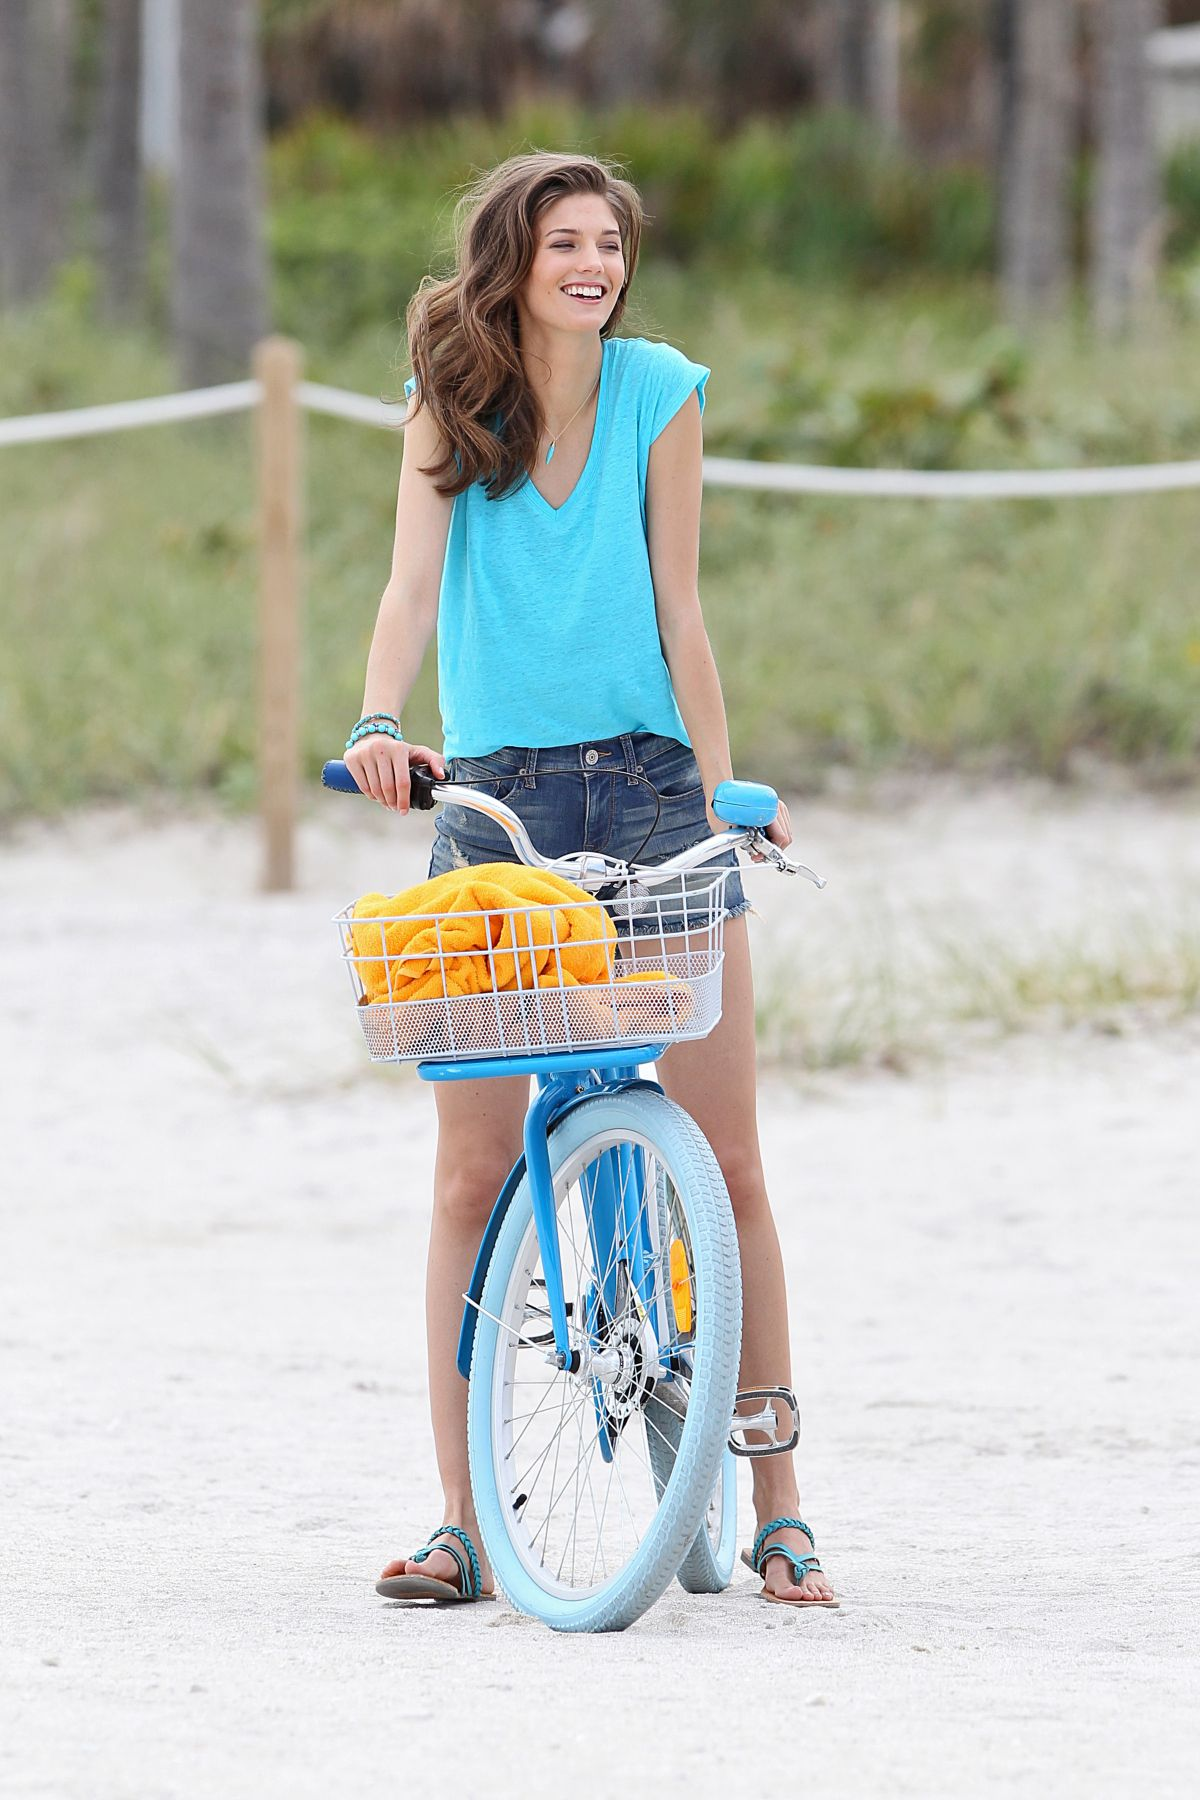 KENDRA SPEARS at a Photoshoot on the Beach in Miami